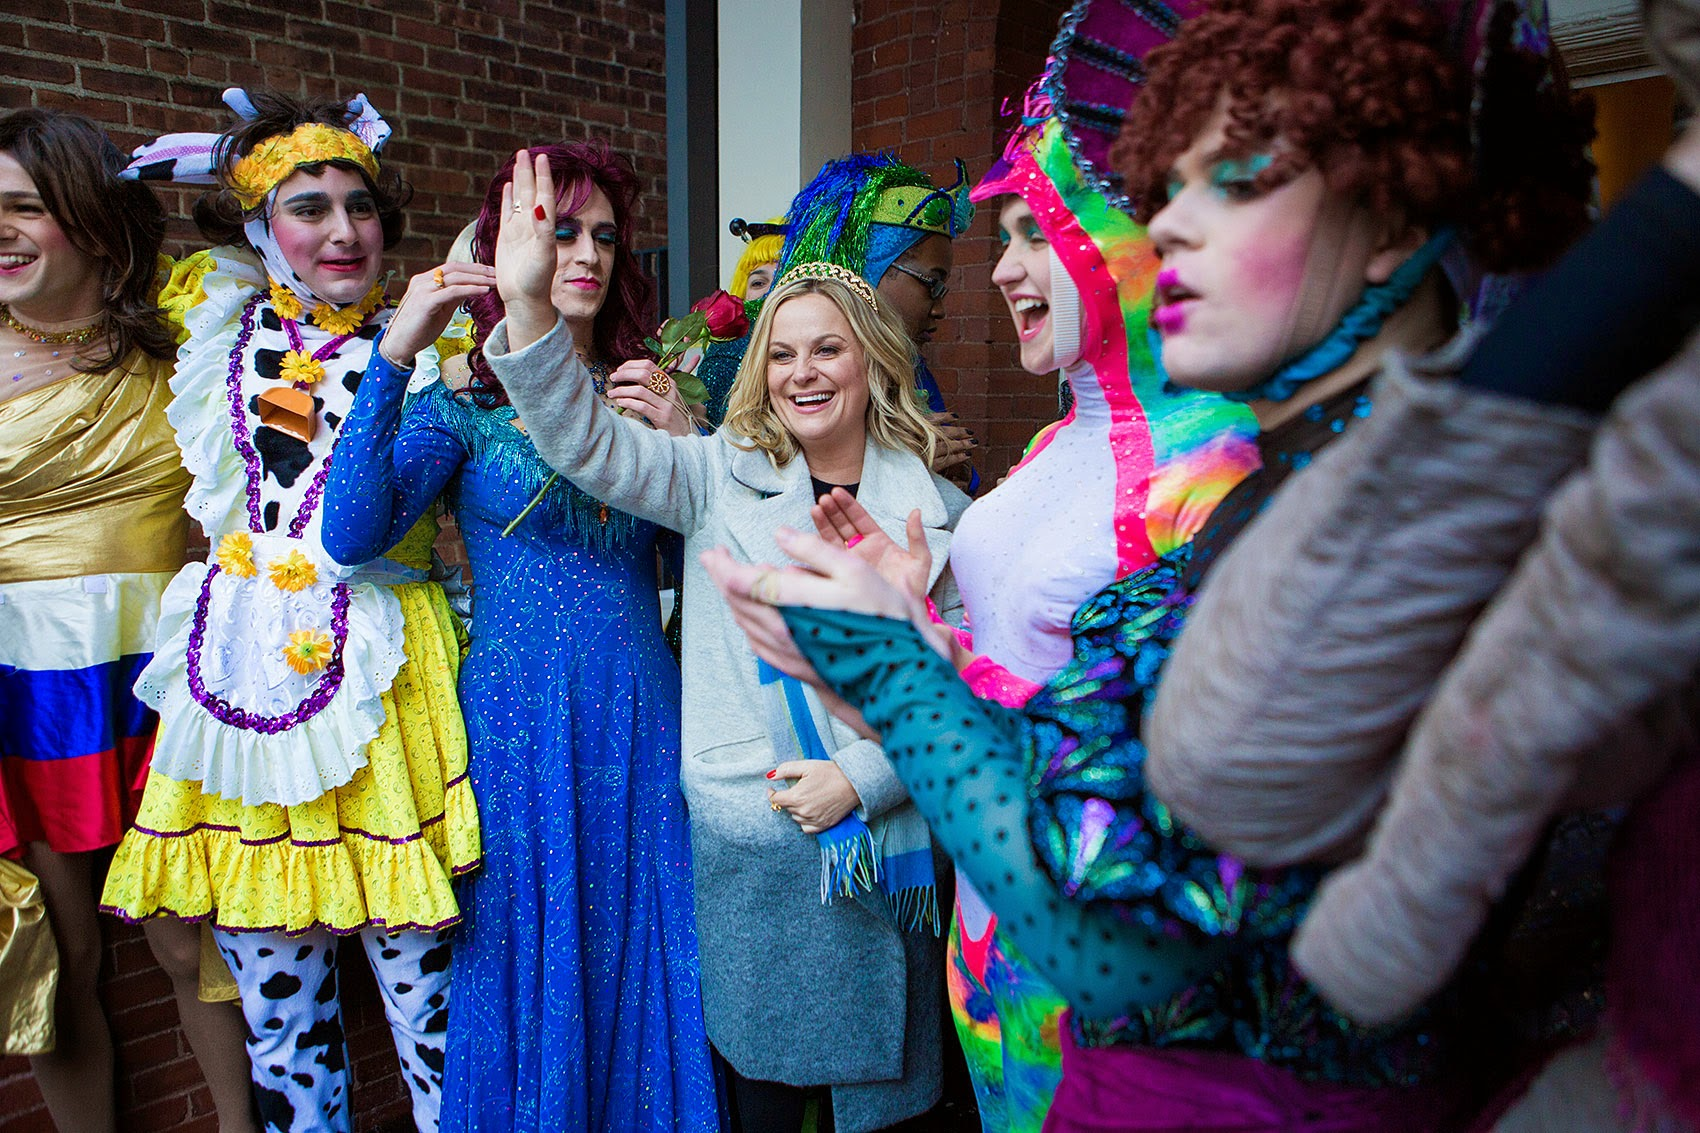 The men of Hasty Pudding dressed in drag stand with Amy Poehler, their 2014 Woman of the Year honoree. (Jesse Costa/WBUR)